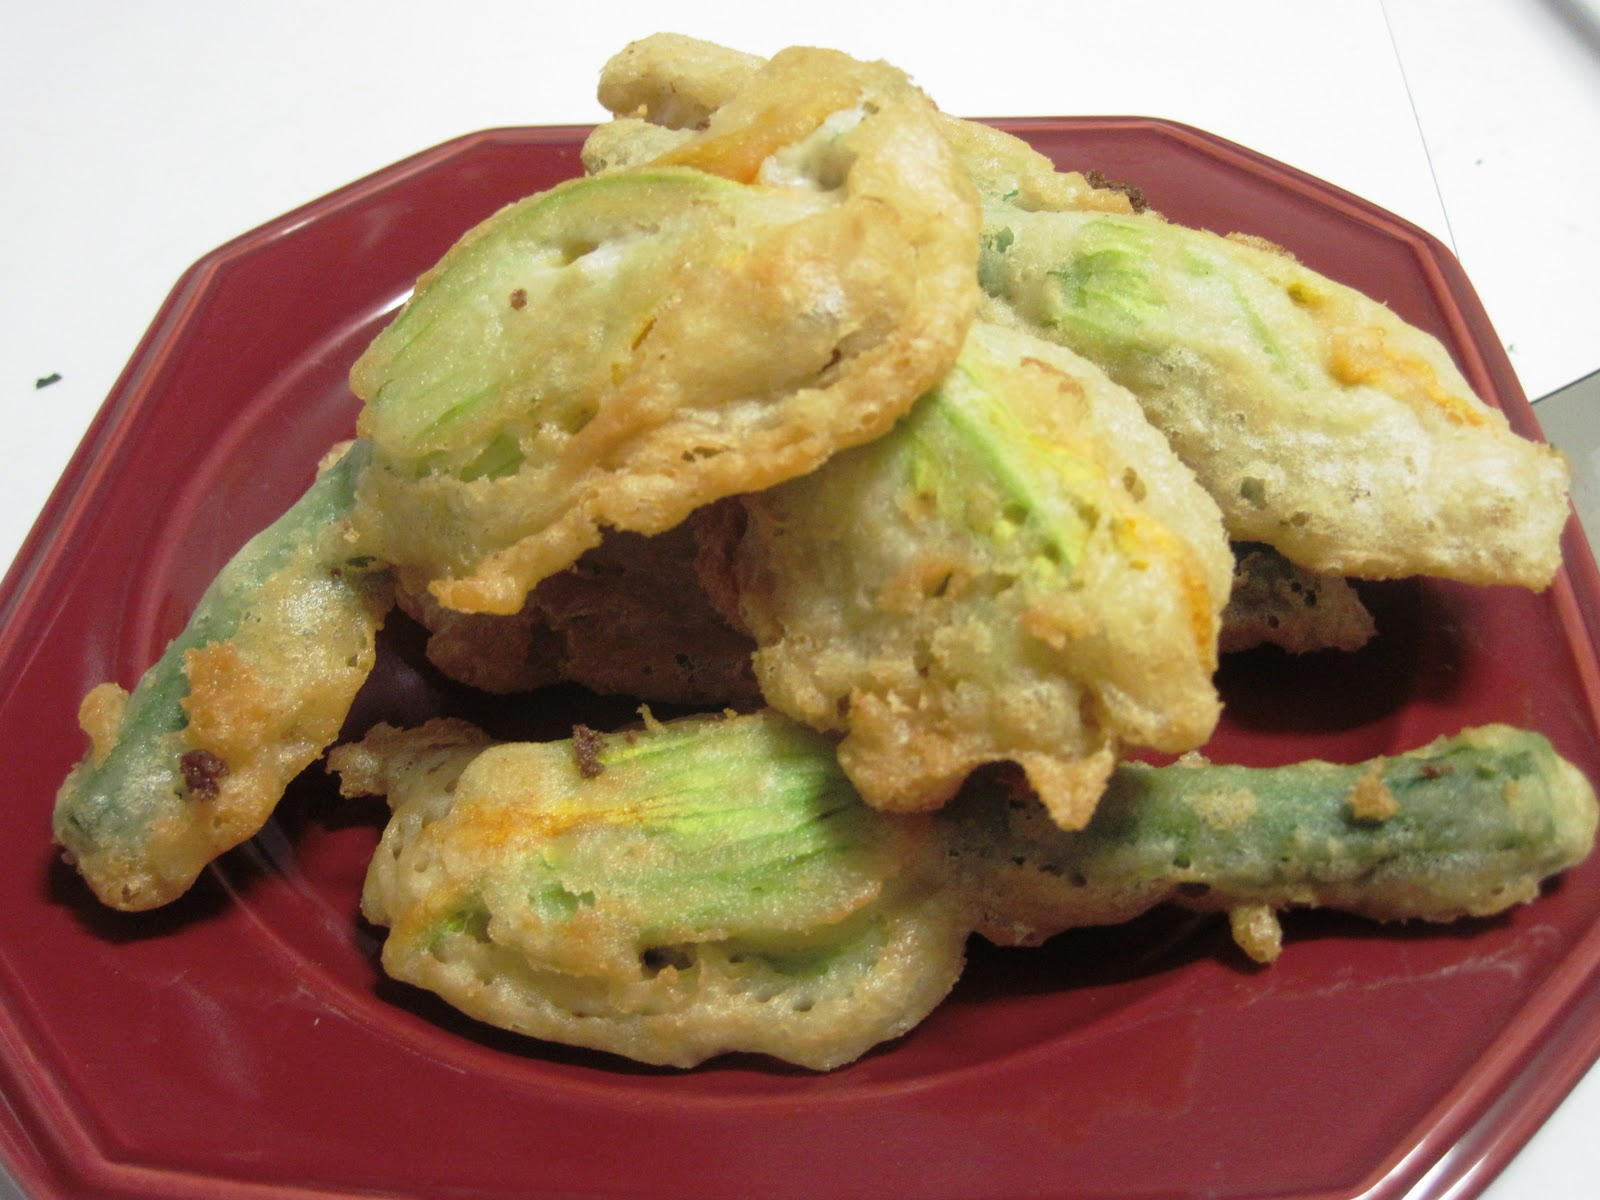 stuffed zucchini flowers ingredients 6 8 zucchini flowers 20g vegan